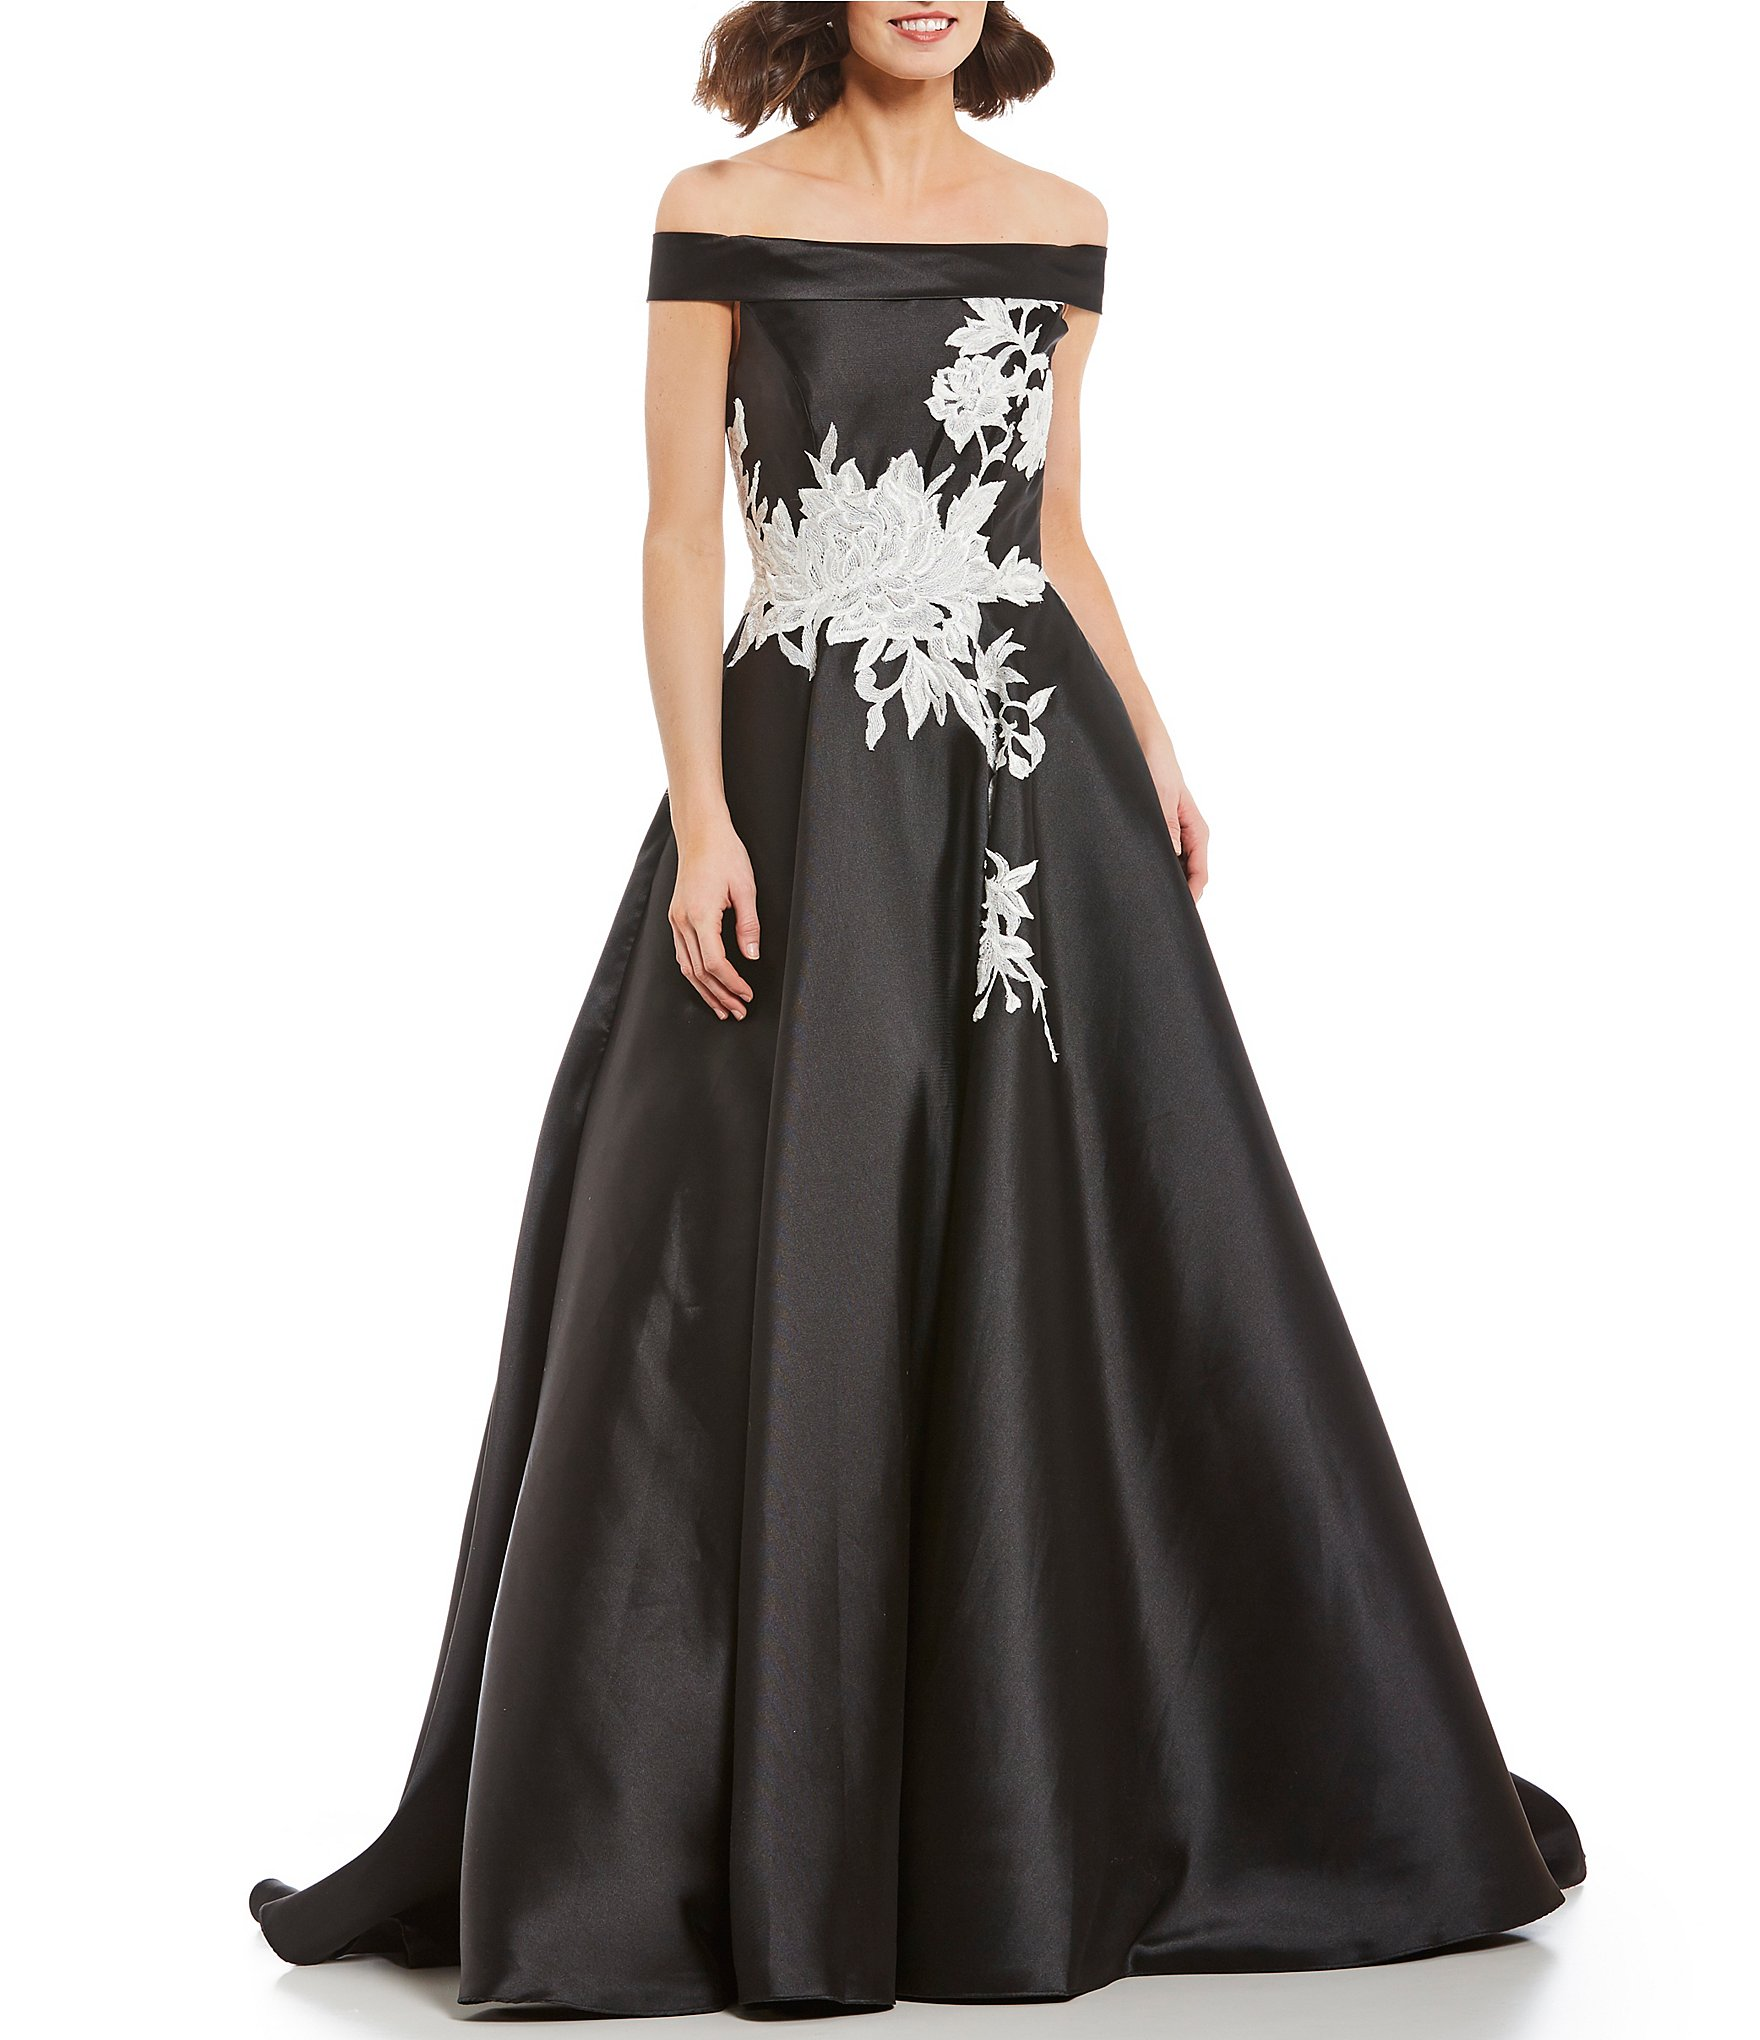 Terani Couture Women\'s Formal Dresses & Evening Gowns | Dillards